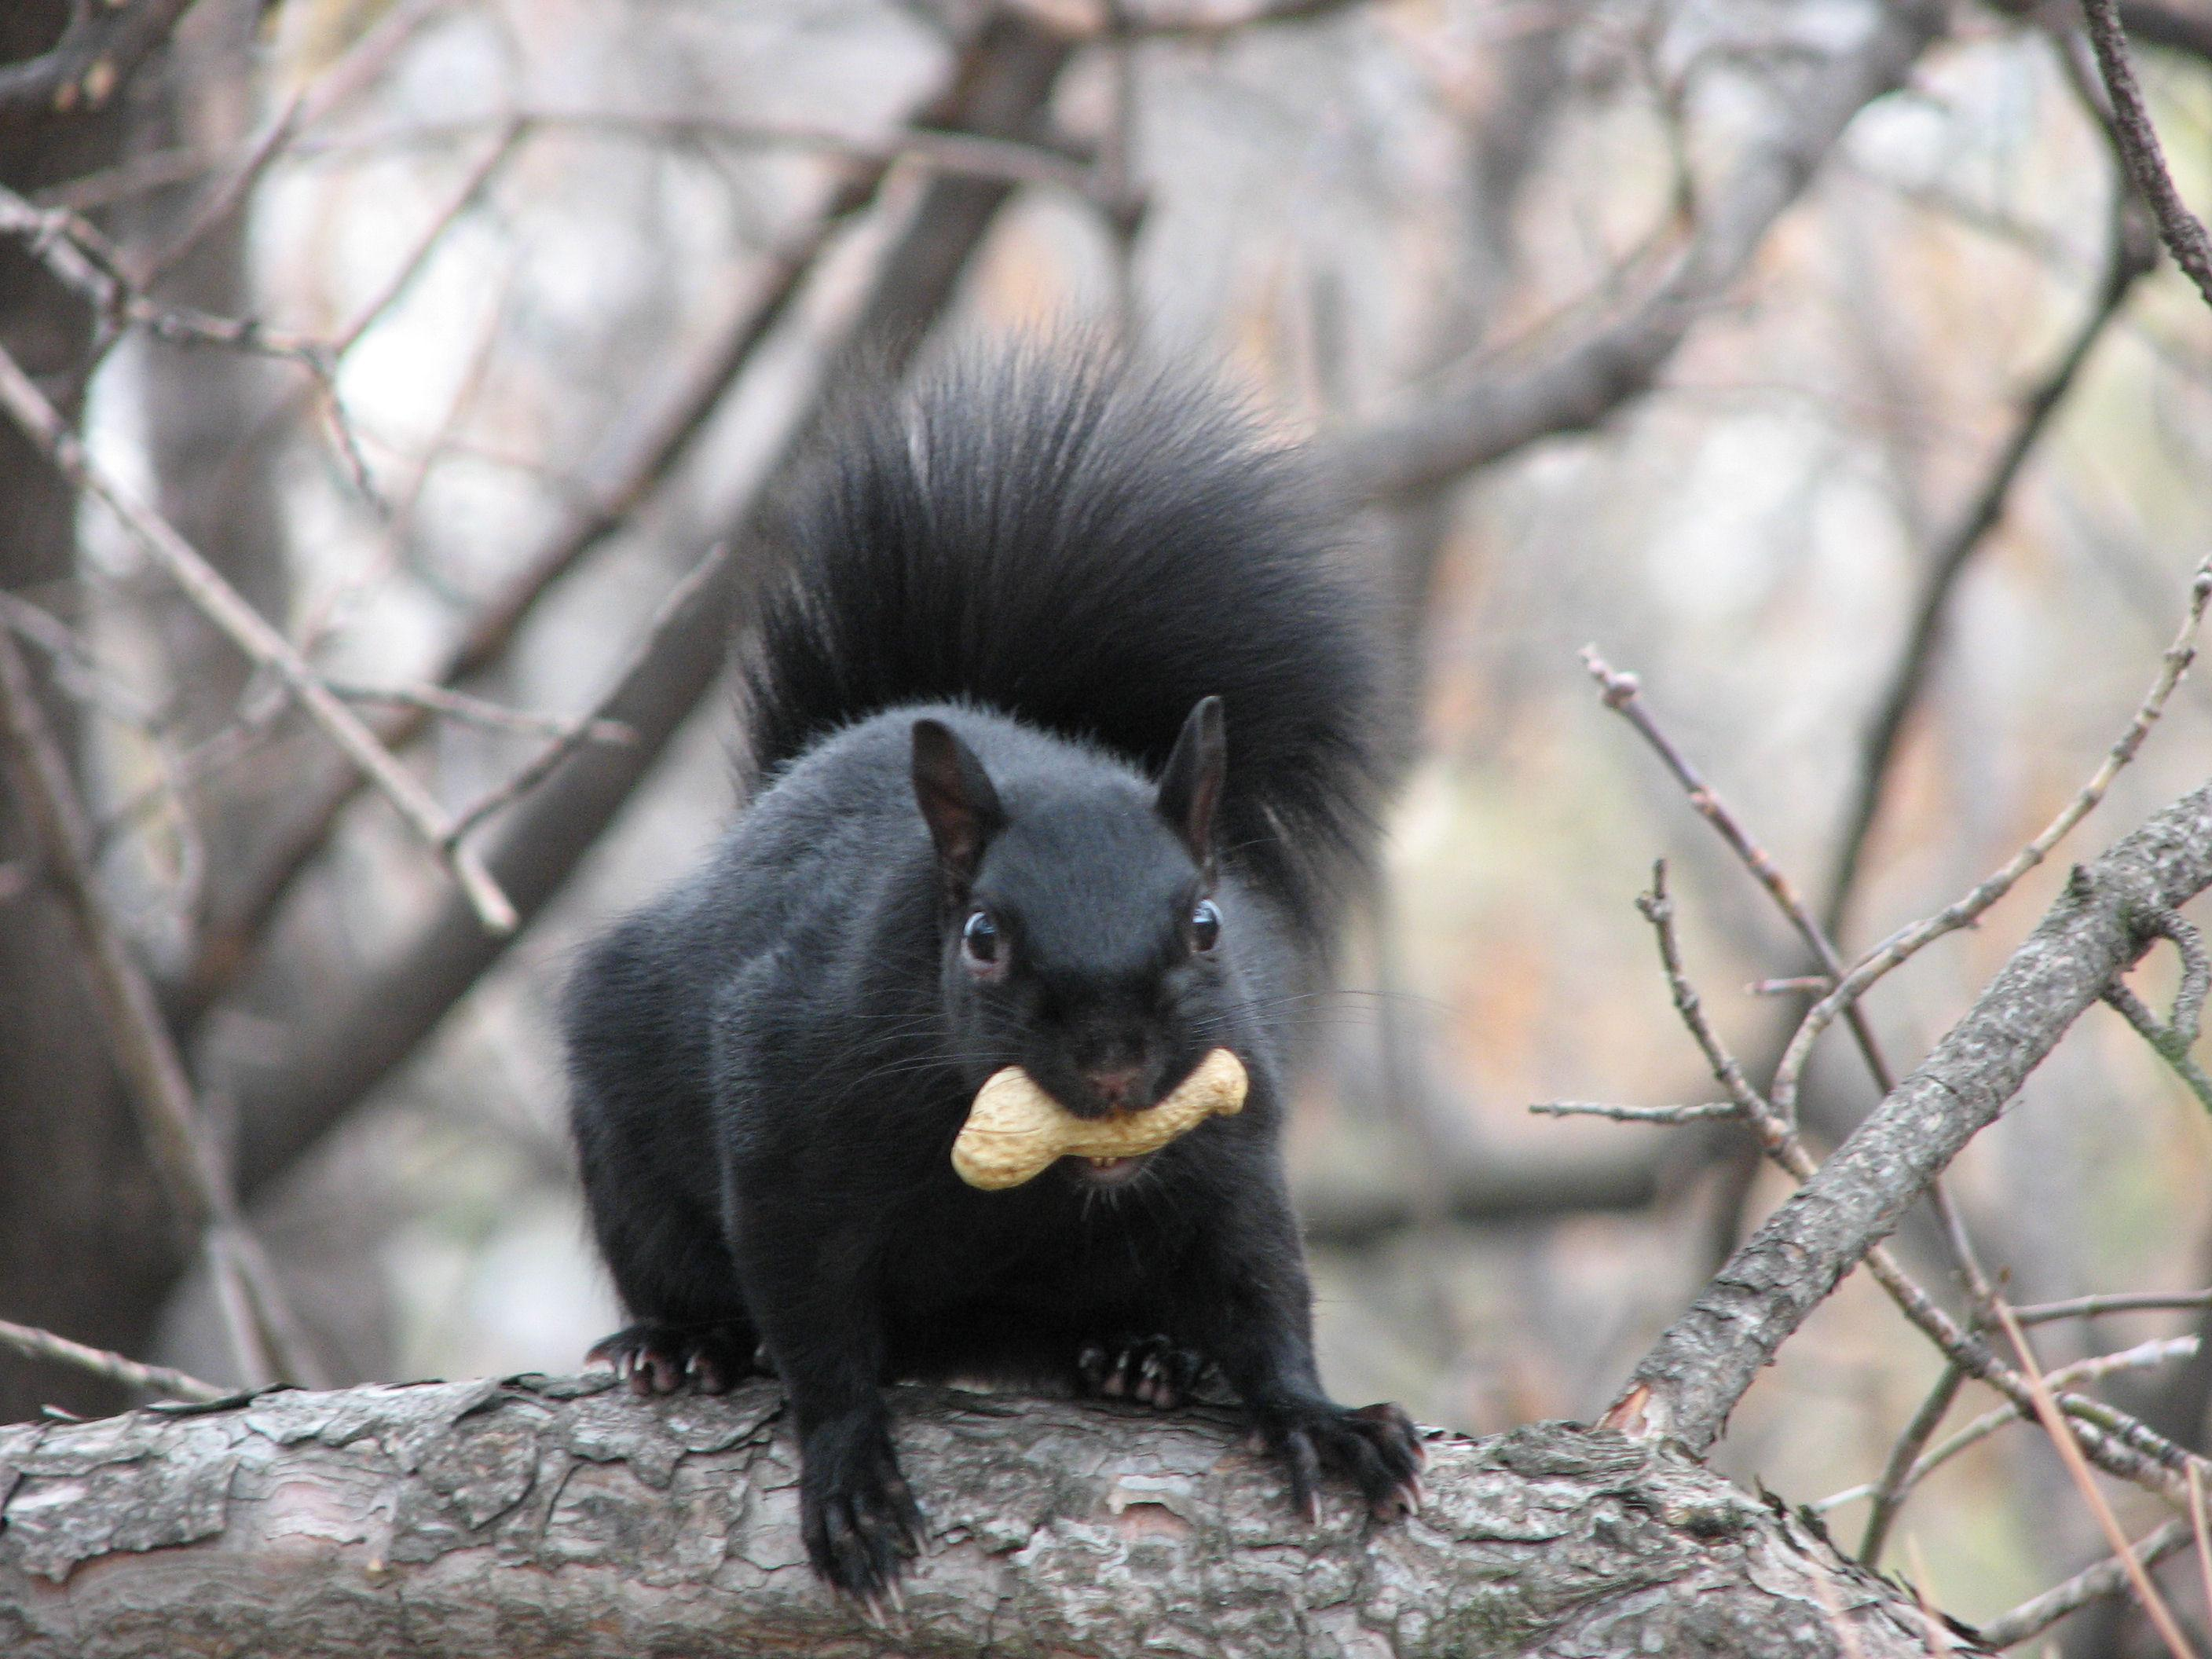 Recently Chicago residents have reported seeing black squirrels, which are more common along the U.S.-Canadian border, according to Steve Sullivan, co-director of Project Squirrel. This photo was taken in Ottawa. (Gordon E. Robertson / Wikimedia Commons)